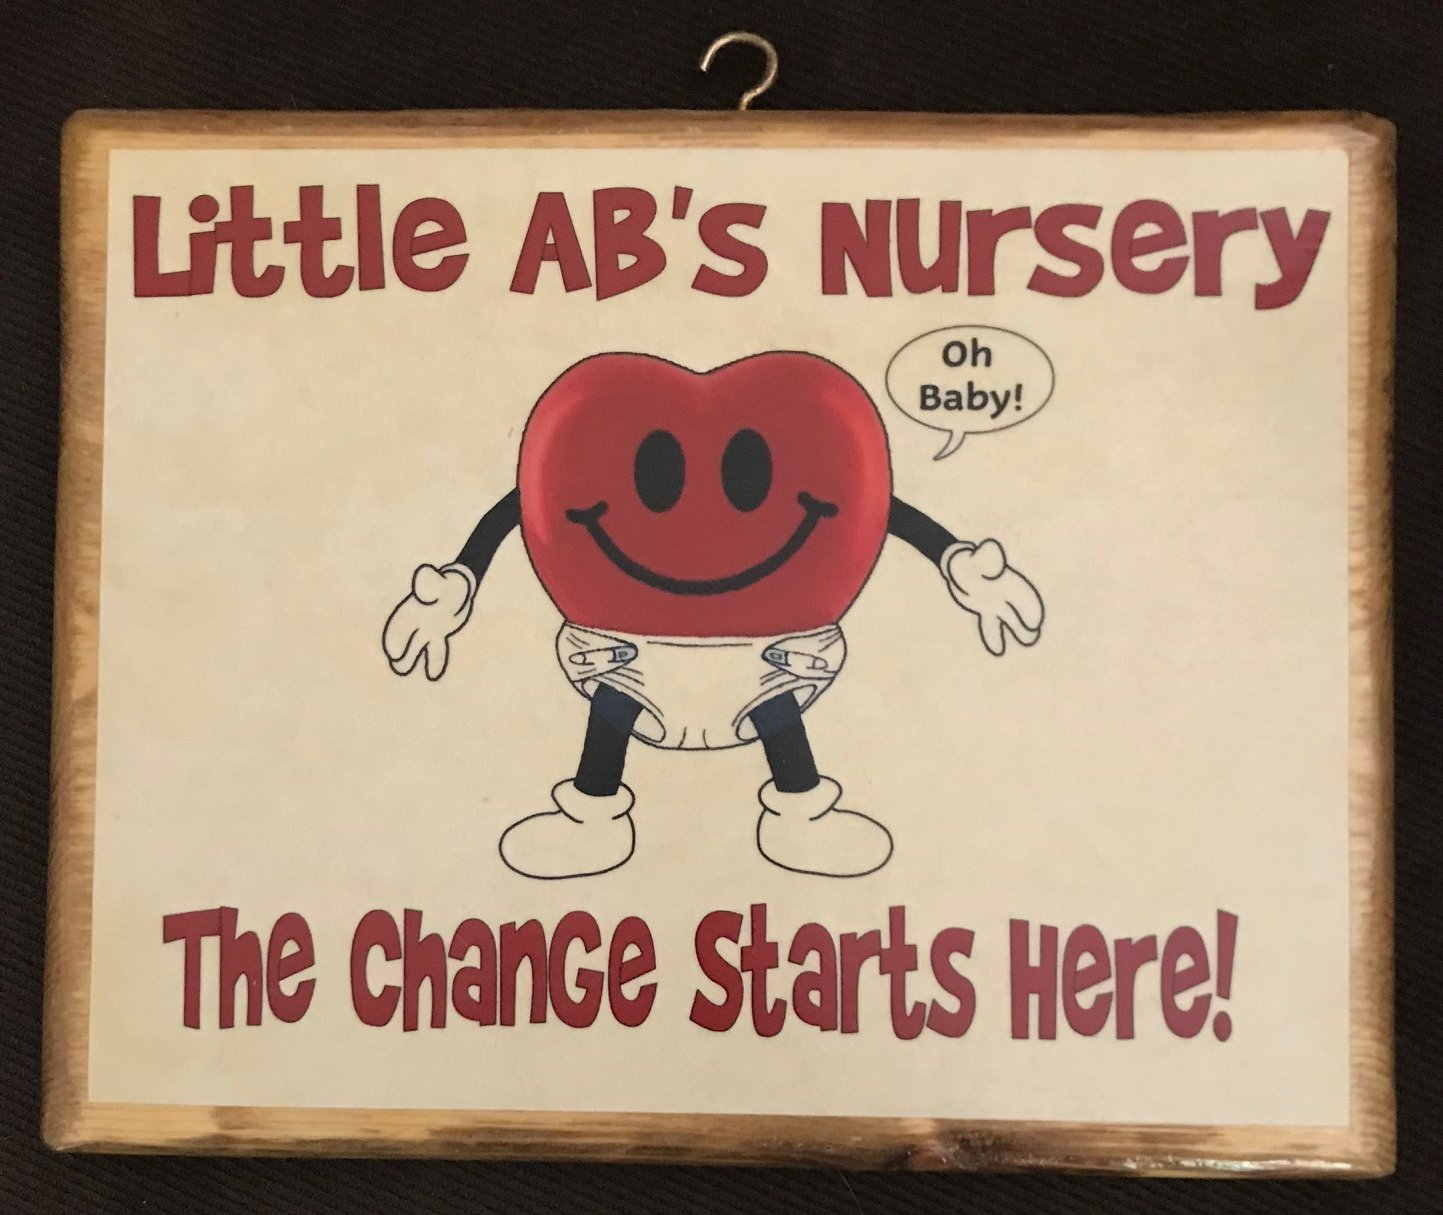 Little AB's Nursery - The Change Starts Here